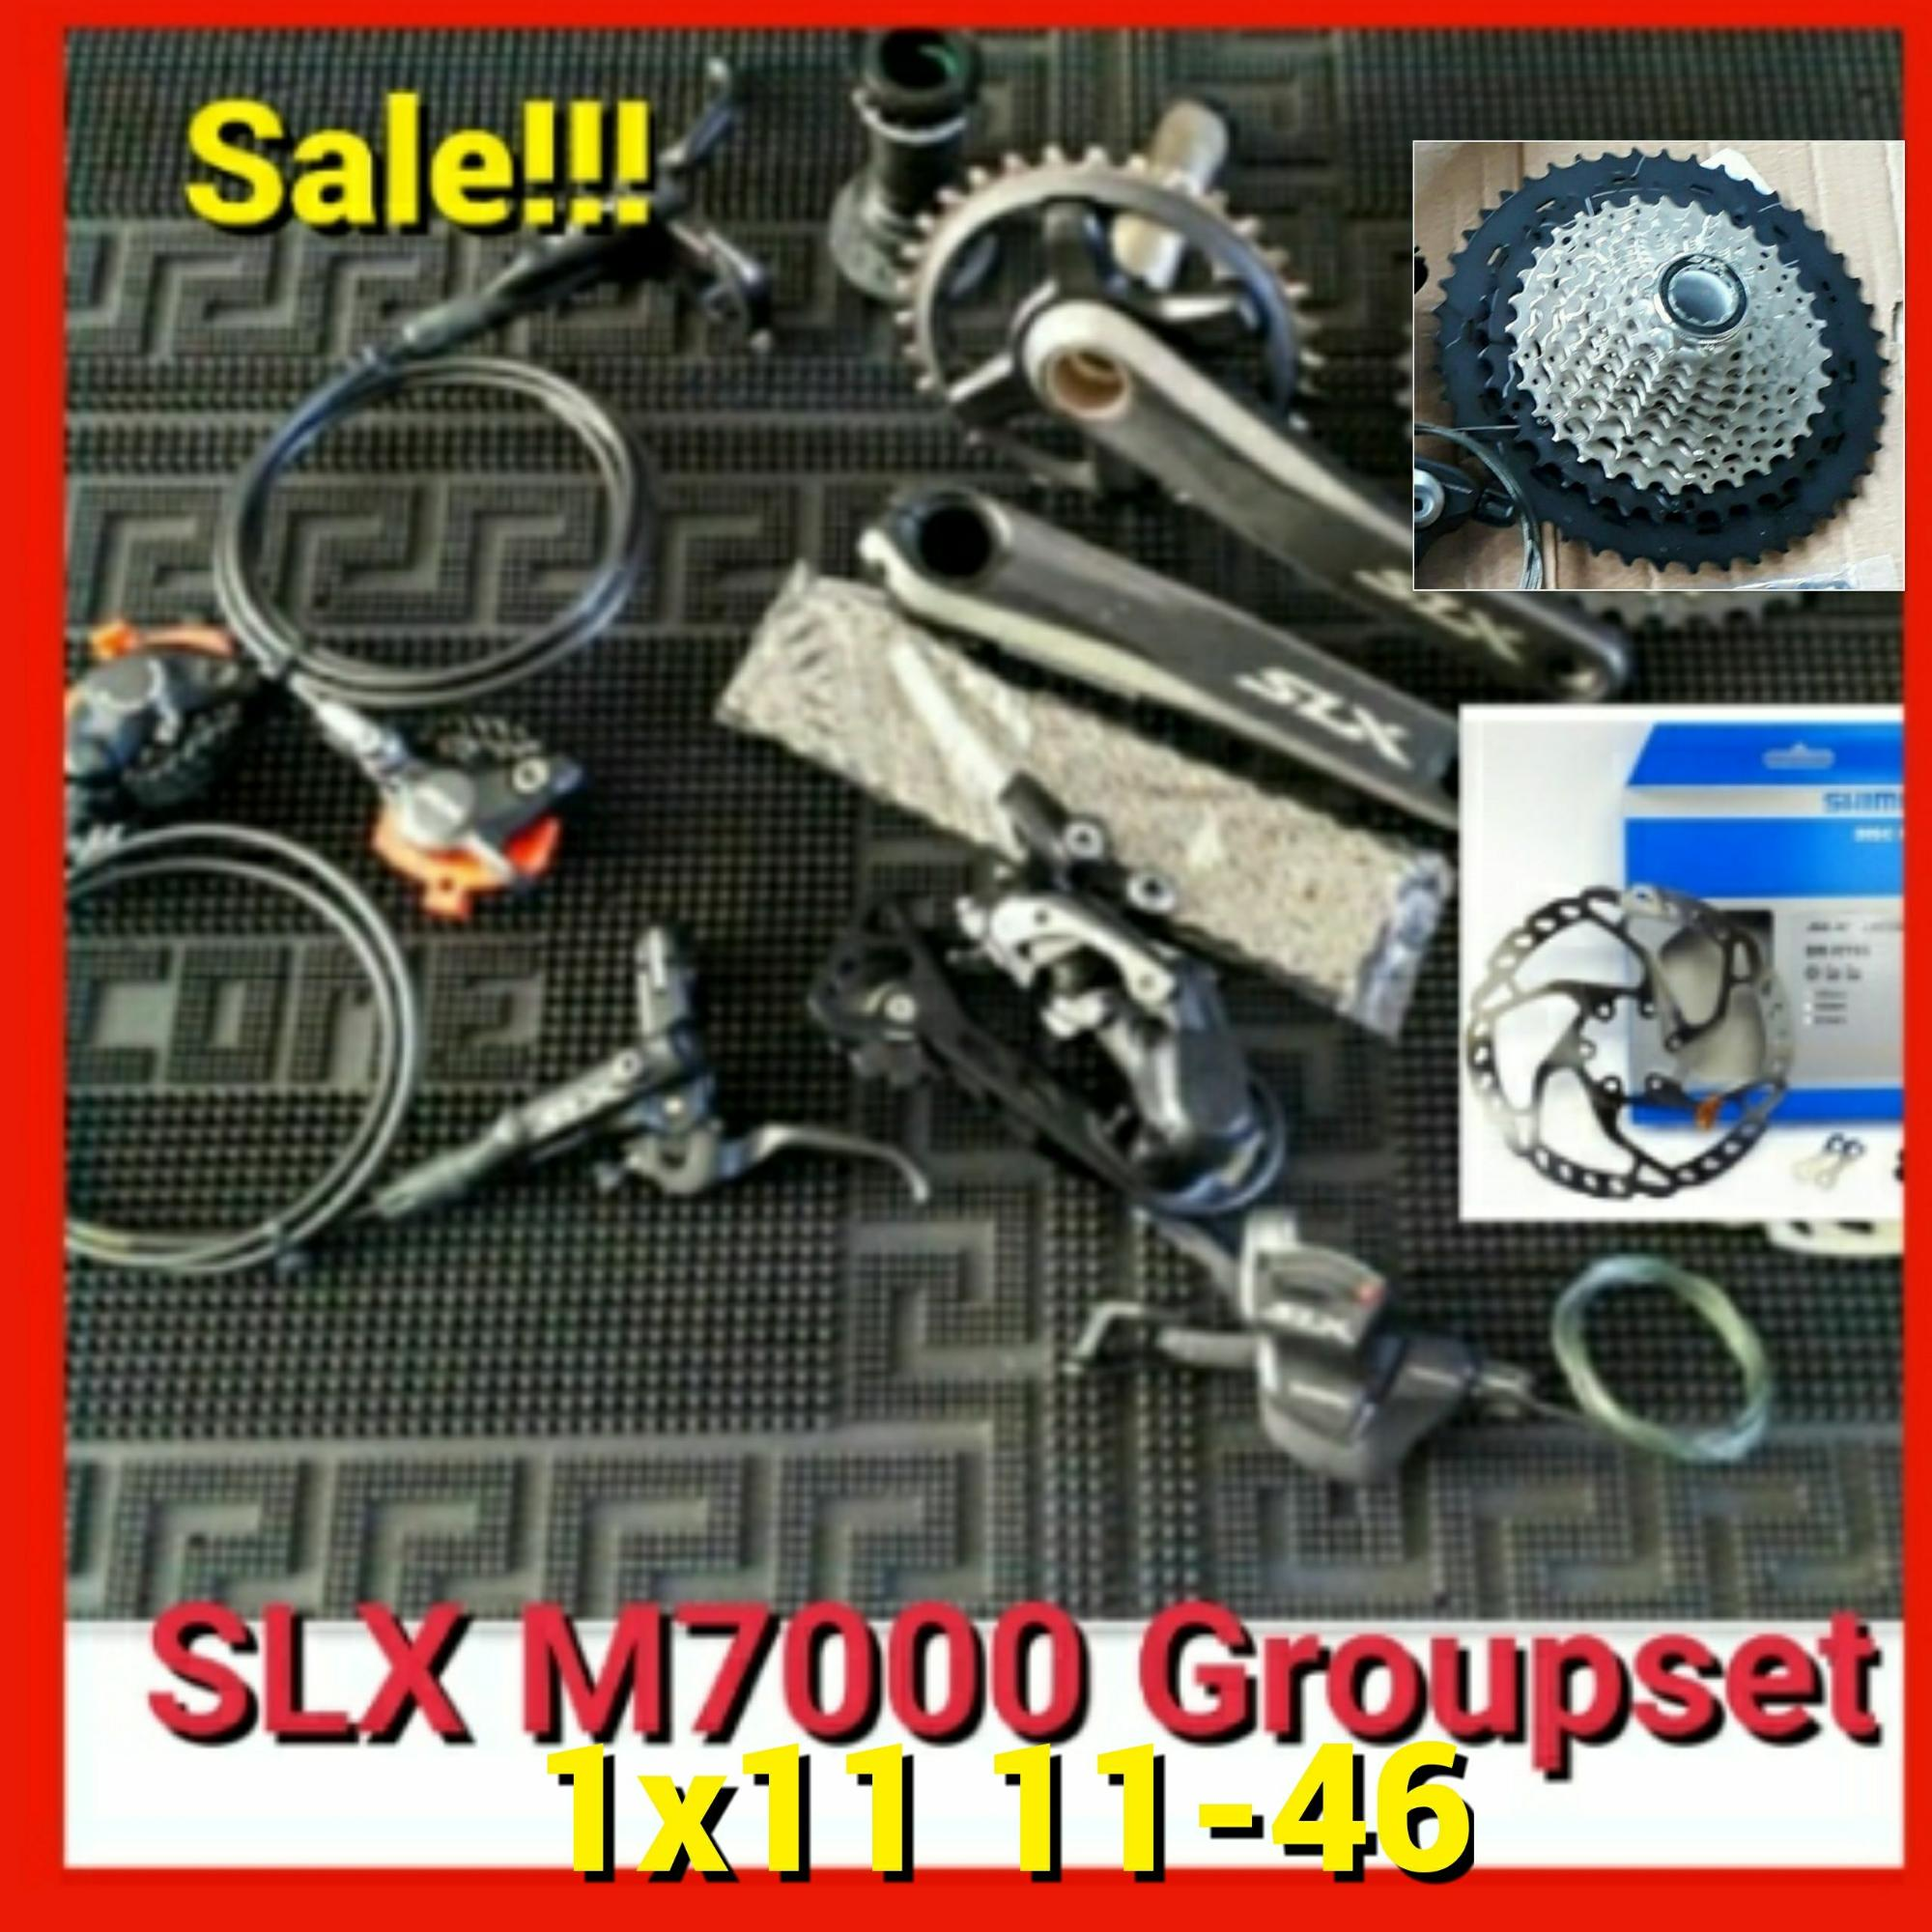 Shimano Philippines Bike Parts For Sale Prices Reviews Rd Alivio Shadow M4000 9speed Slx M7000 1x11 11 46 Groupset